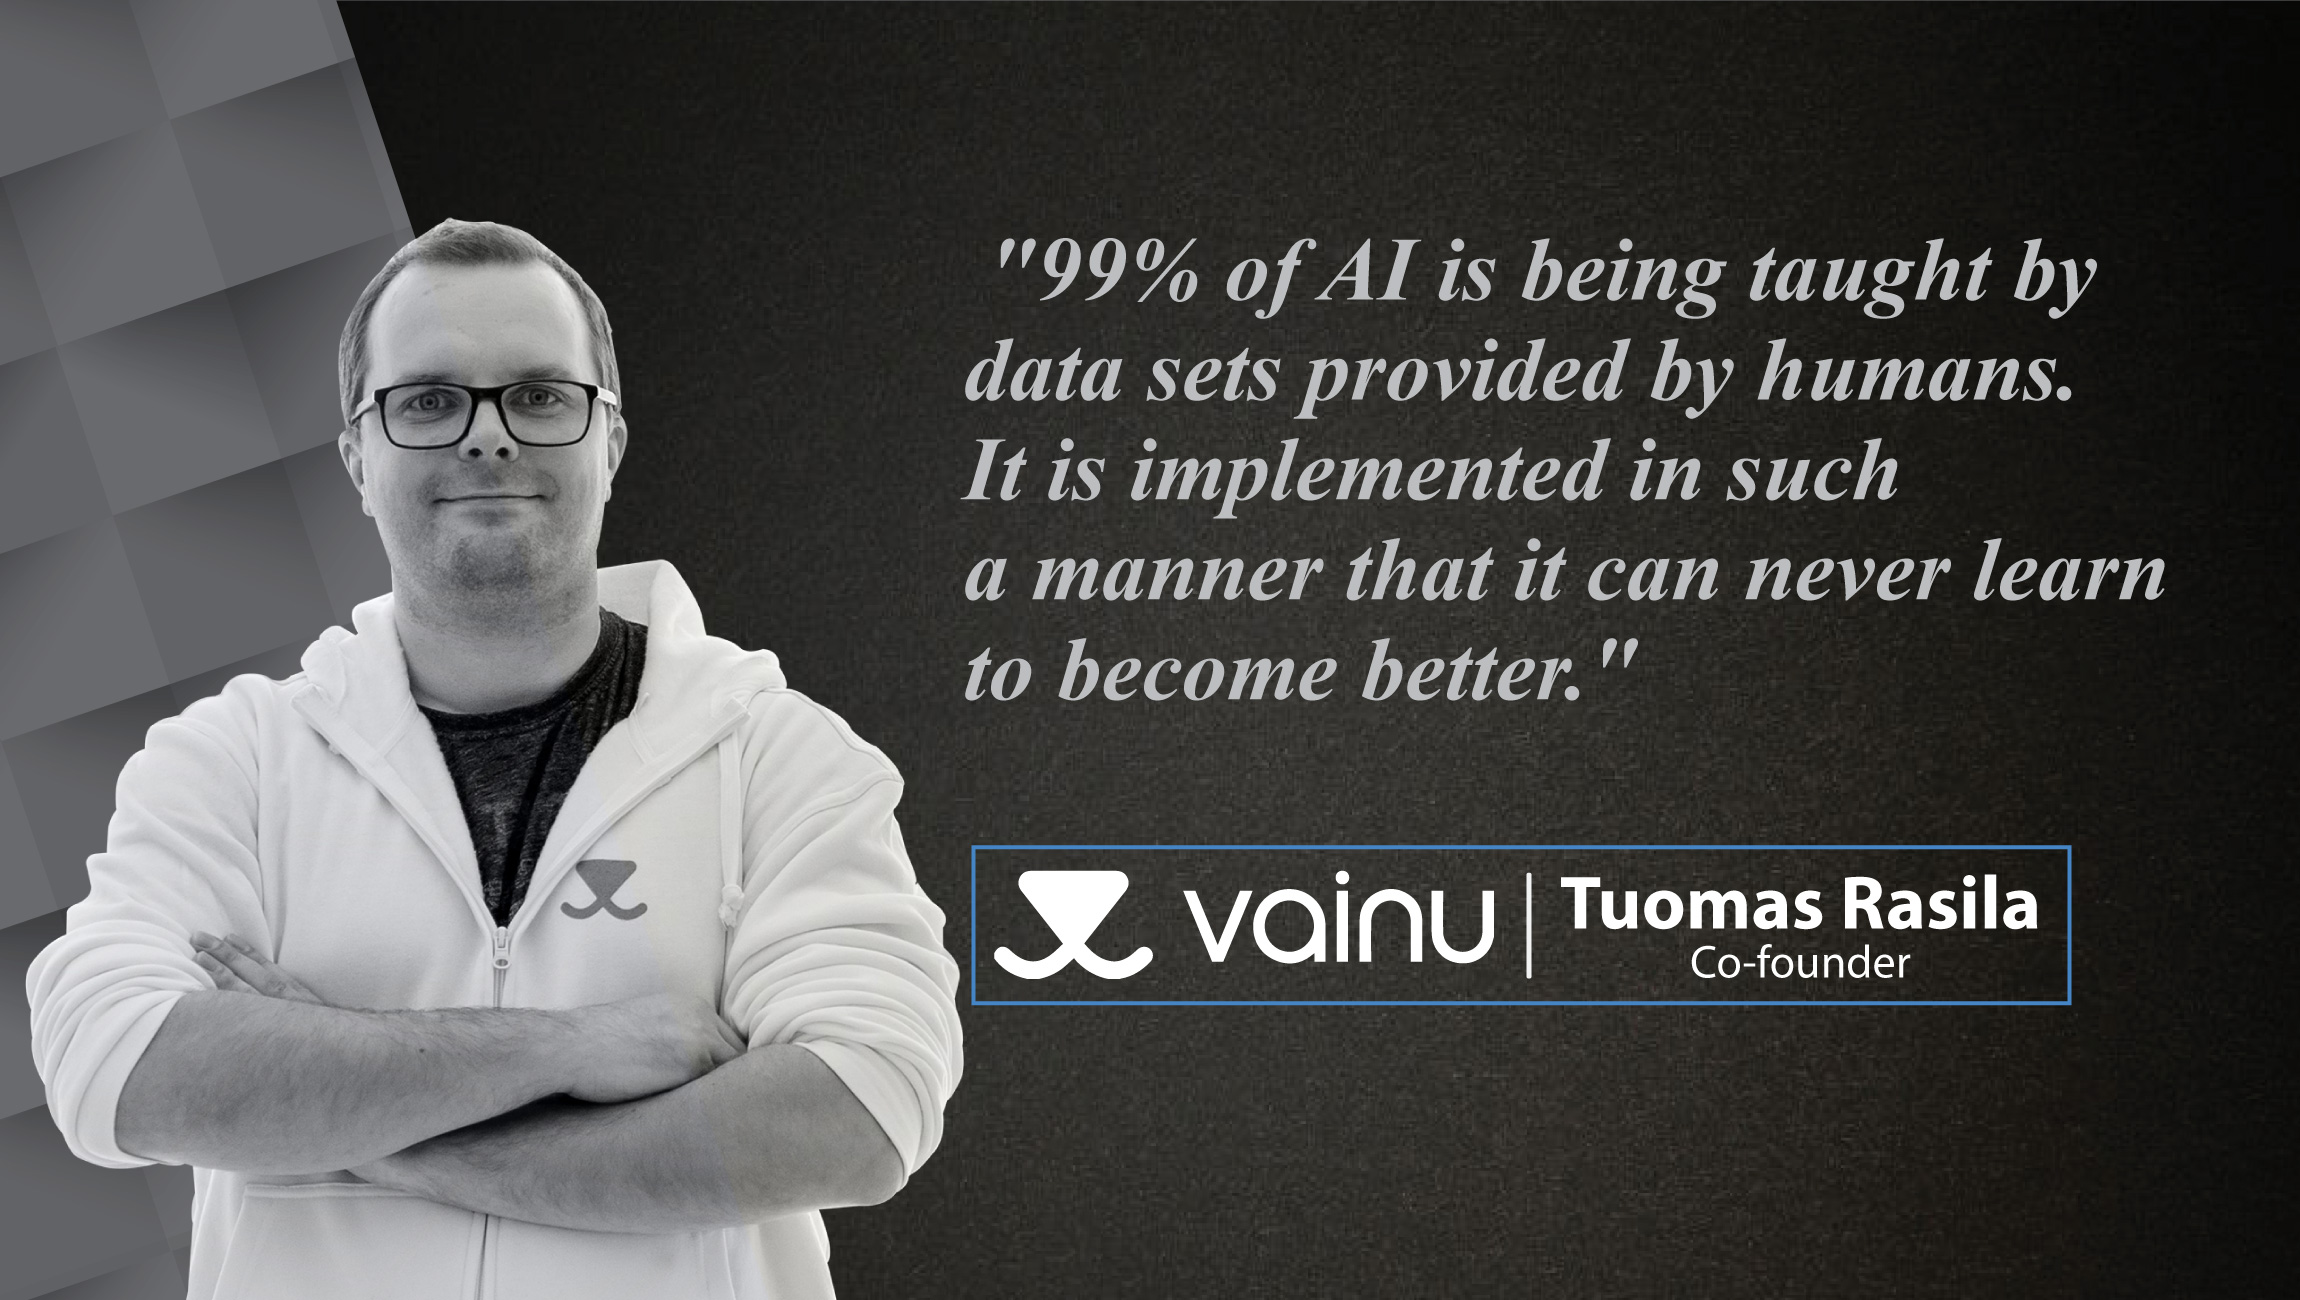 Interview with Tuomas Rasila, Co-Founder at Vainu_Cue card